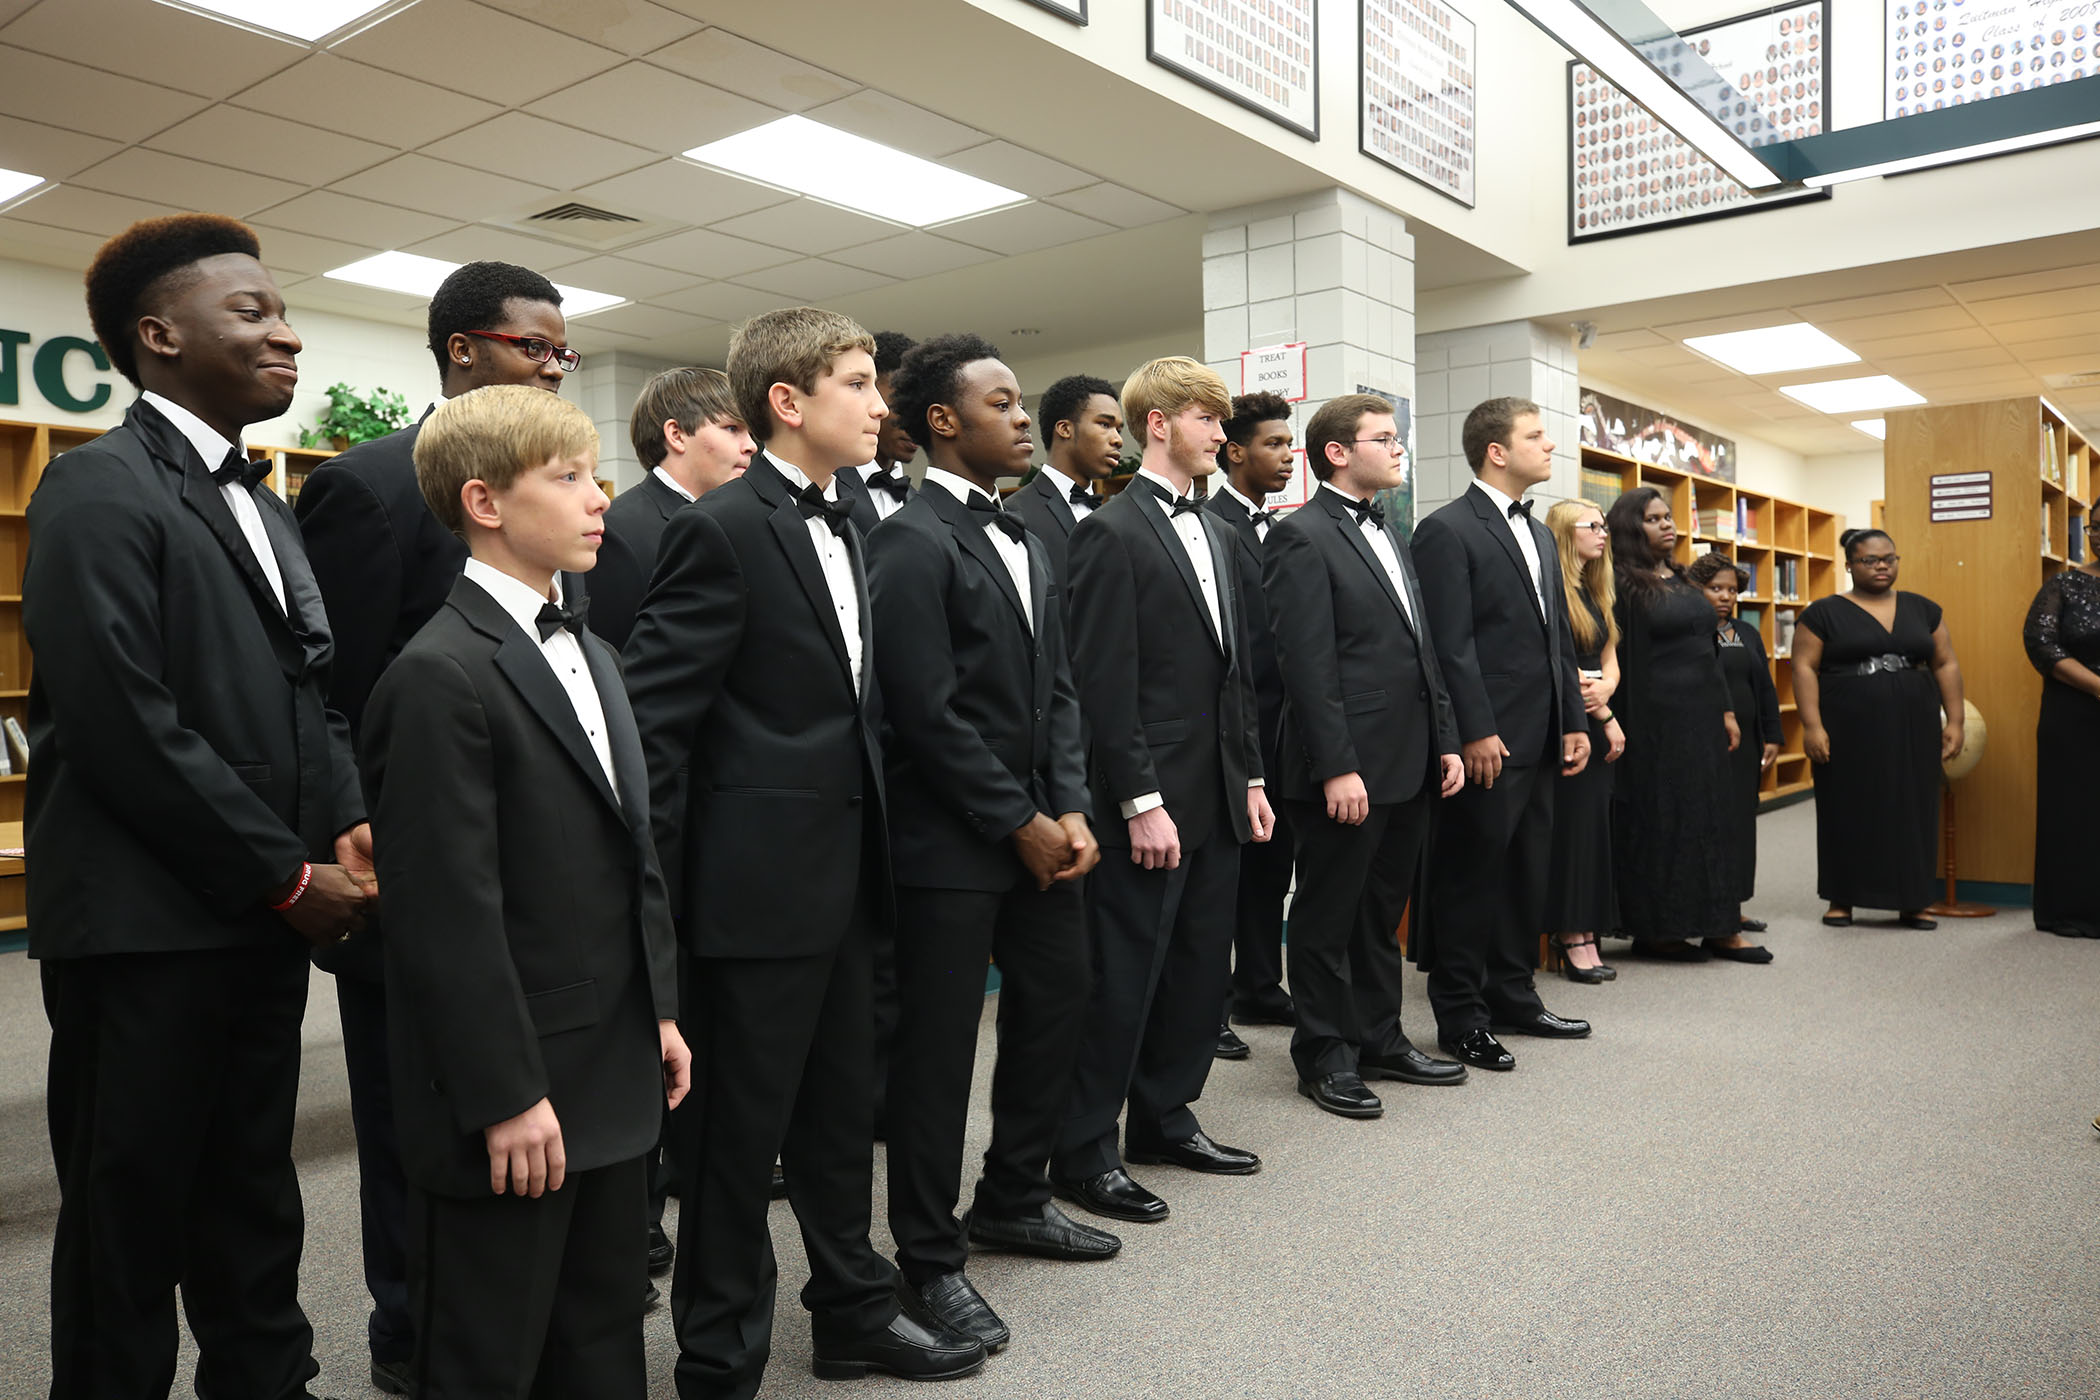 QHS Choral students provide a concert in the QHS Library.